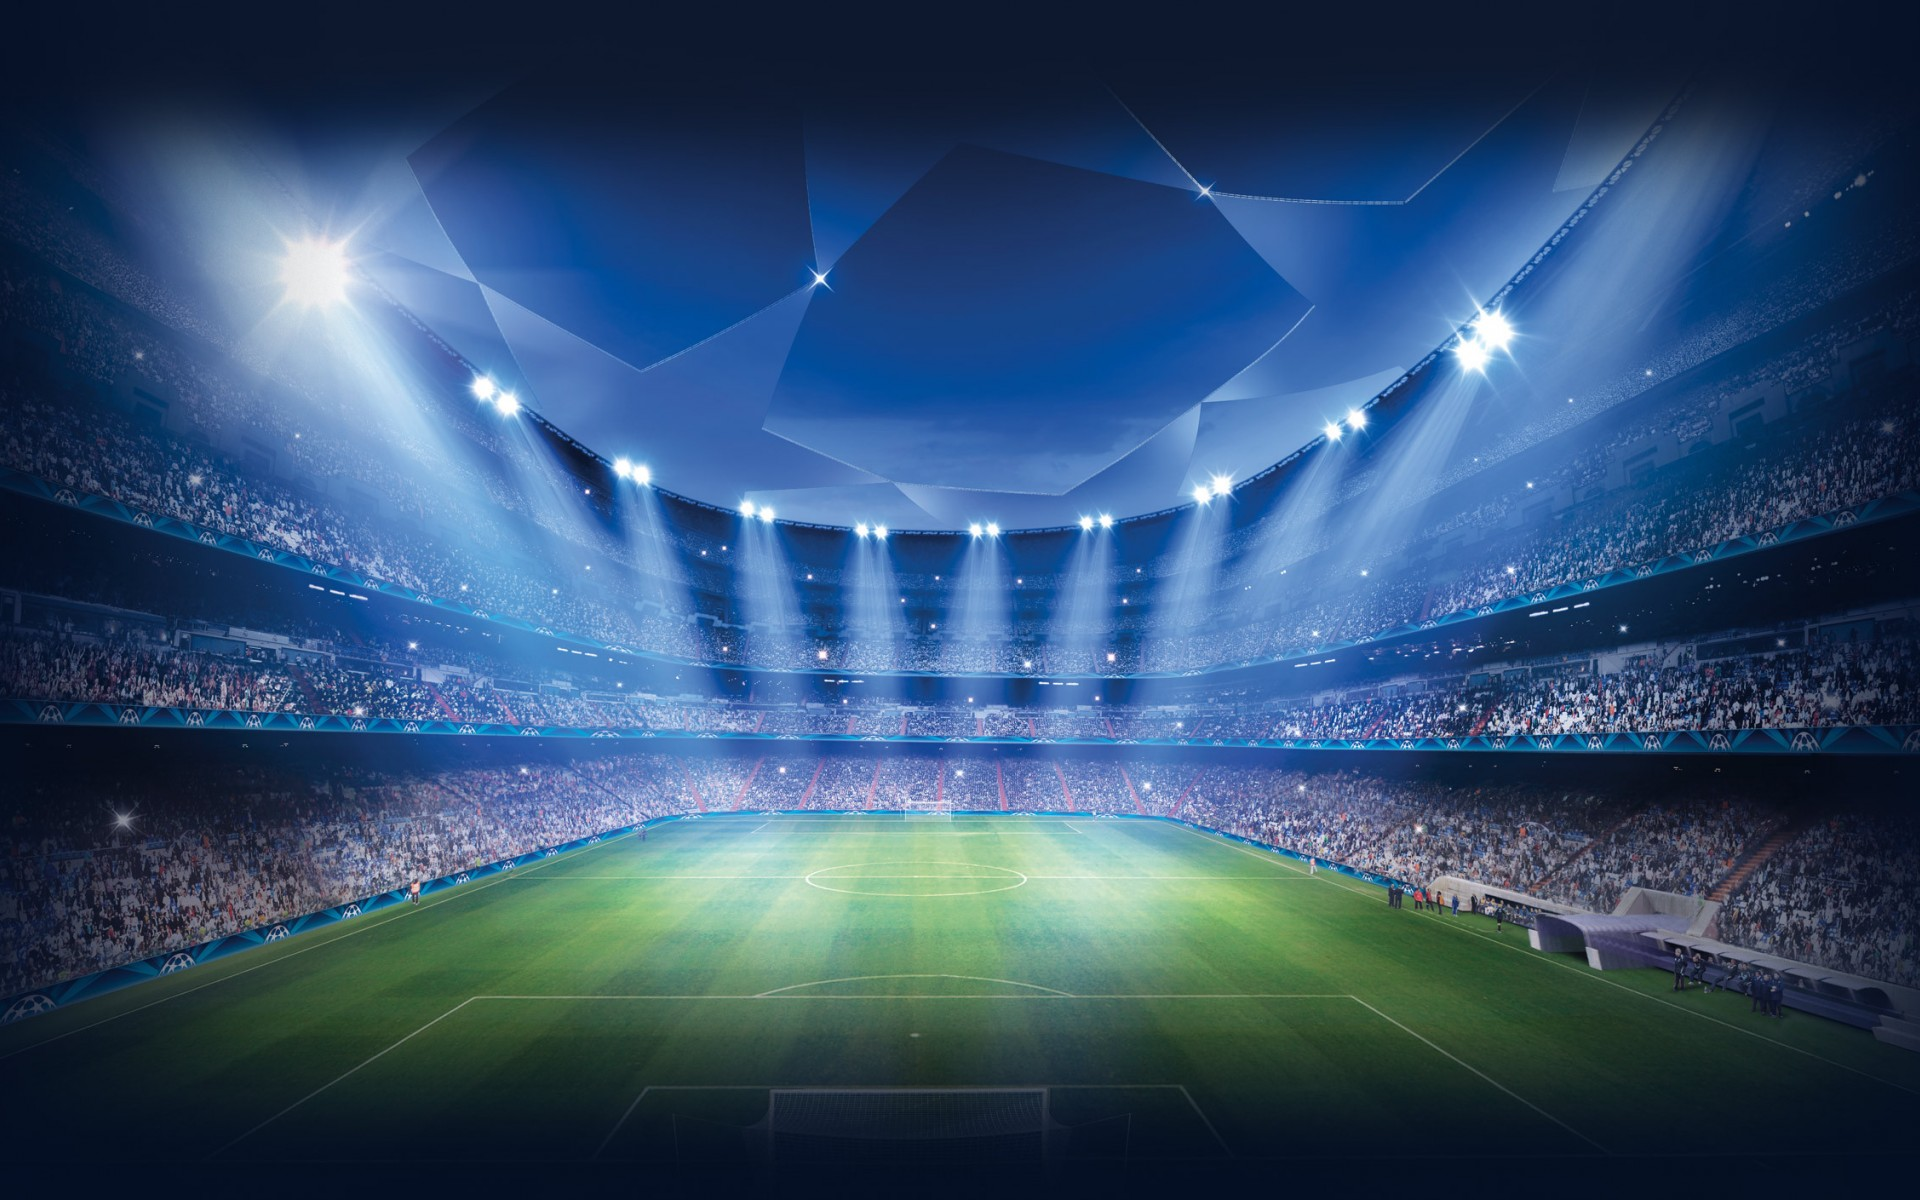 Wallpaper UEFA Champions League Estadio Images